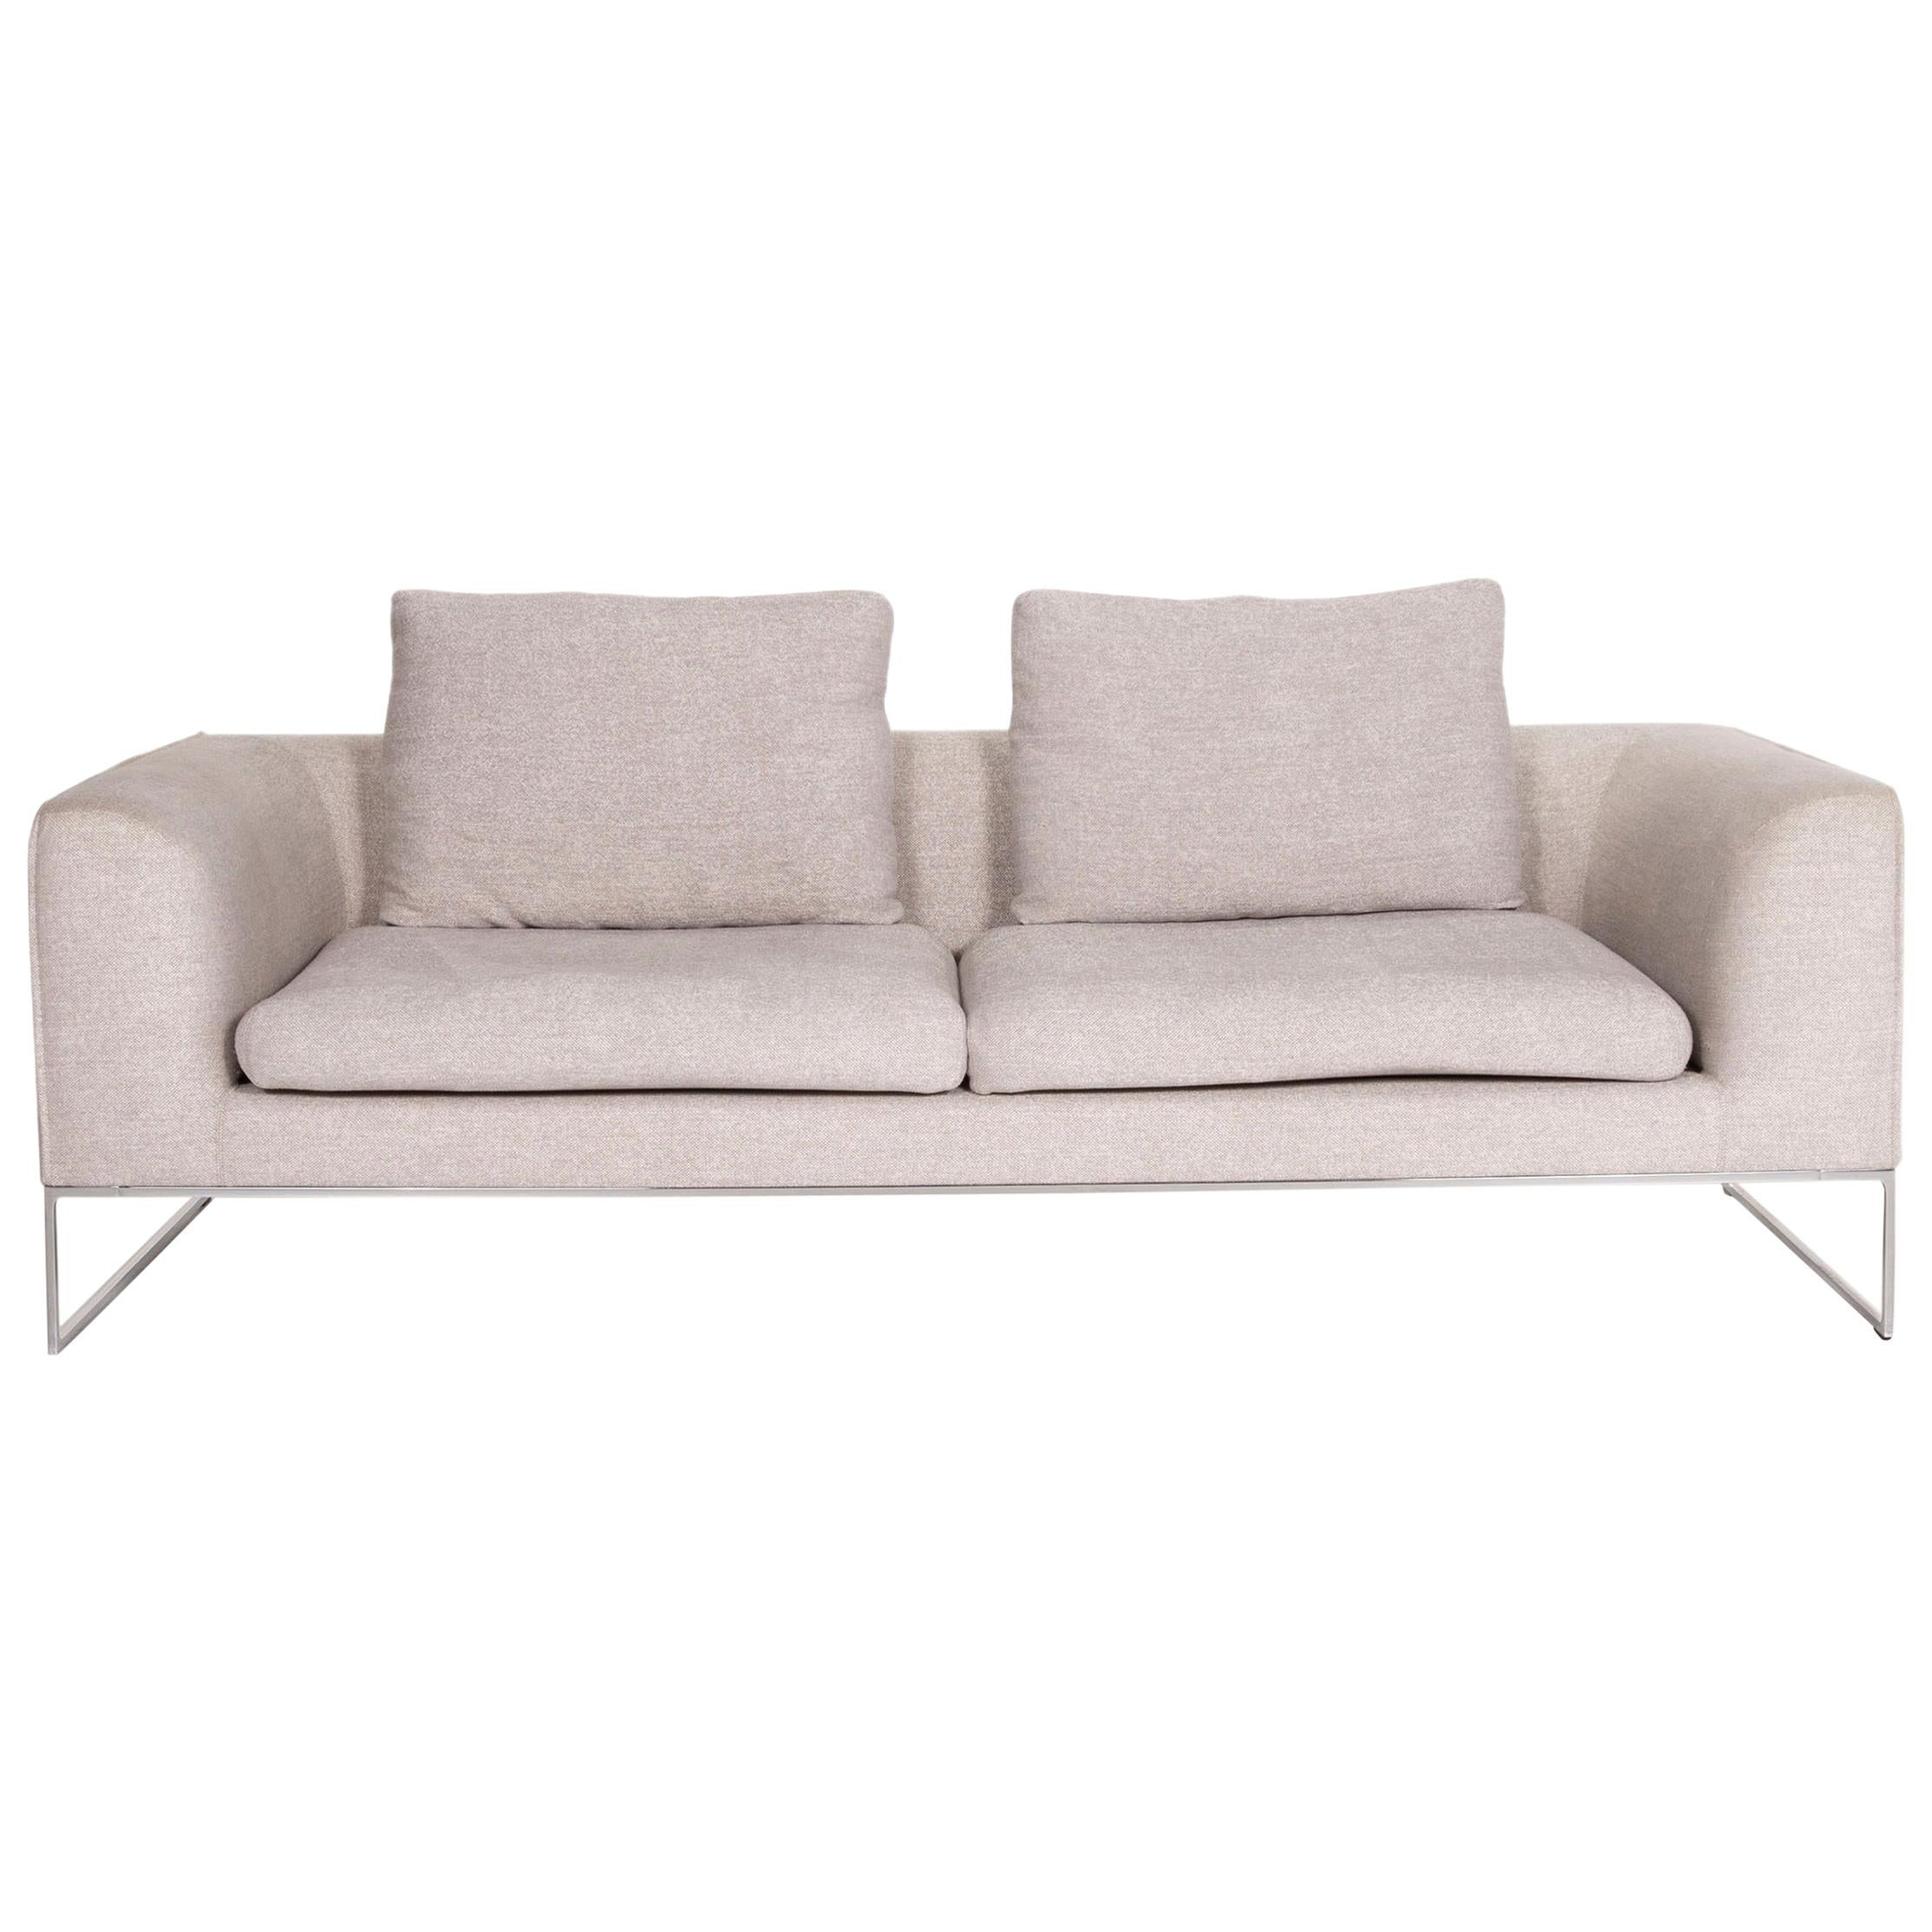 COR Mell Fabric Sofa Gray Two-Seater